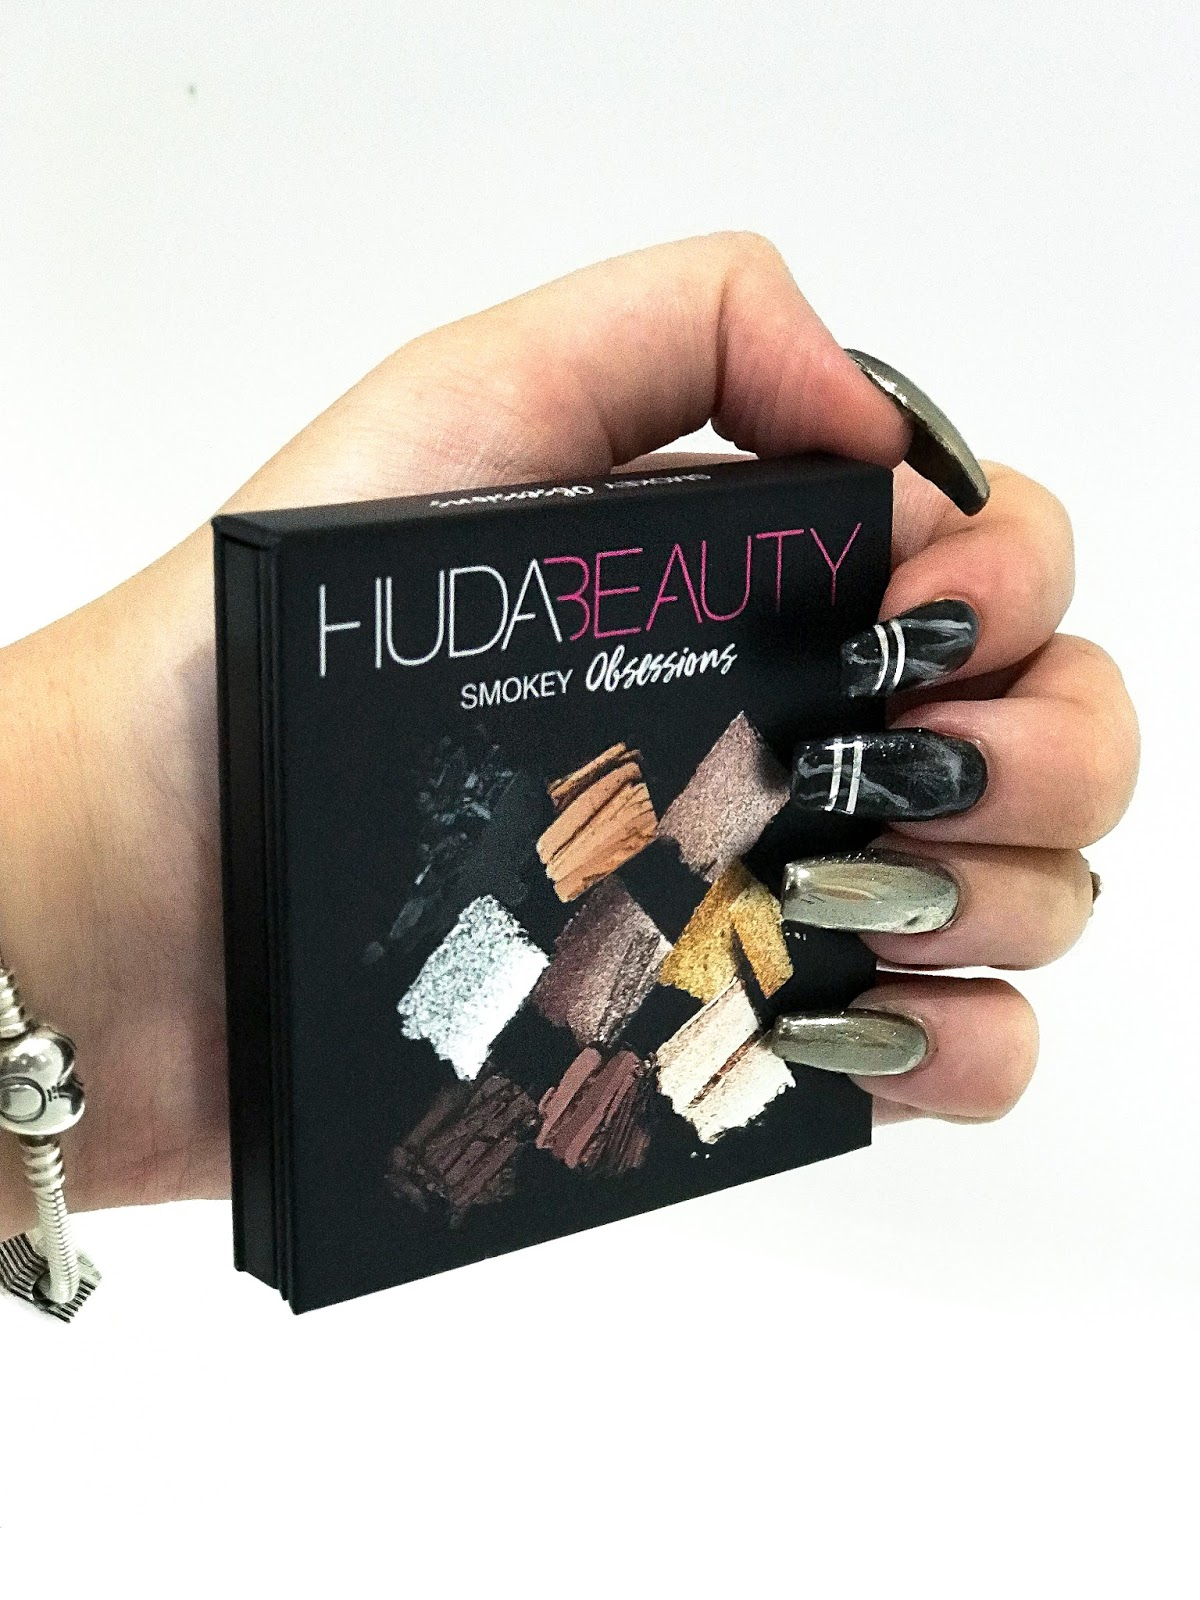 HUDA BEAUTY SMOKY OBSESSIONS PALETTE REVIEW